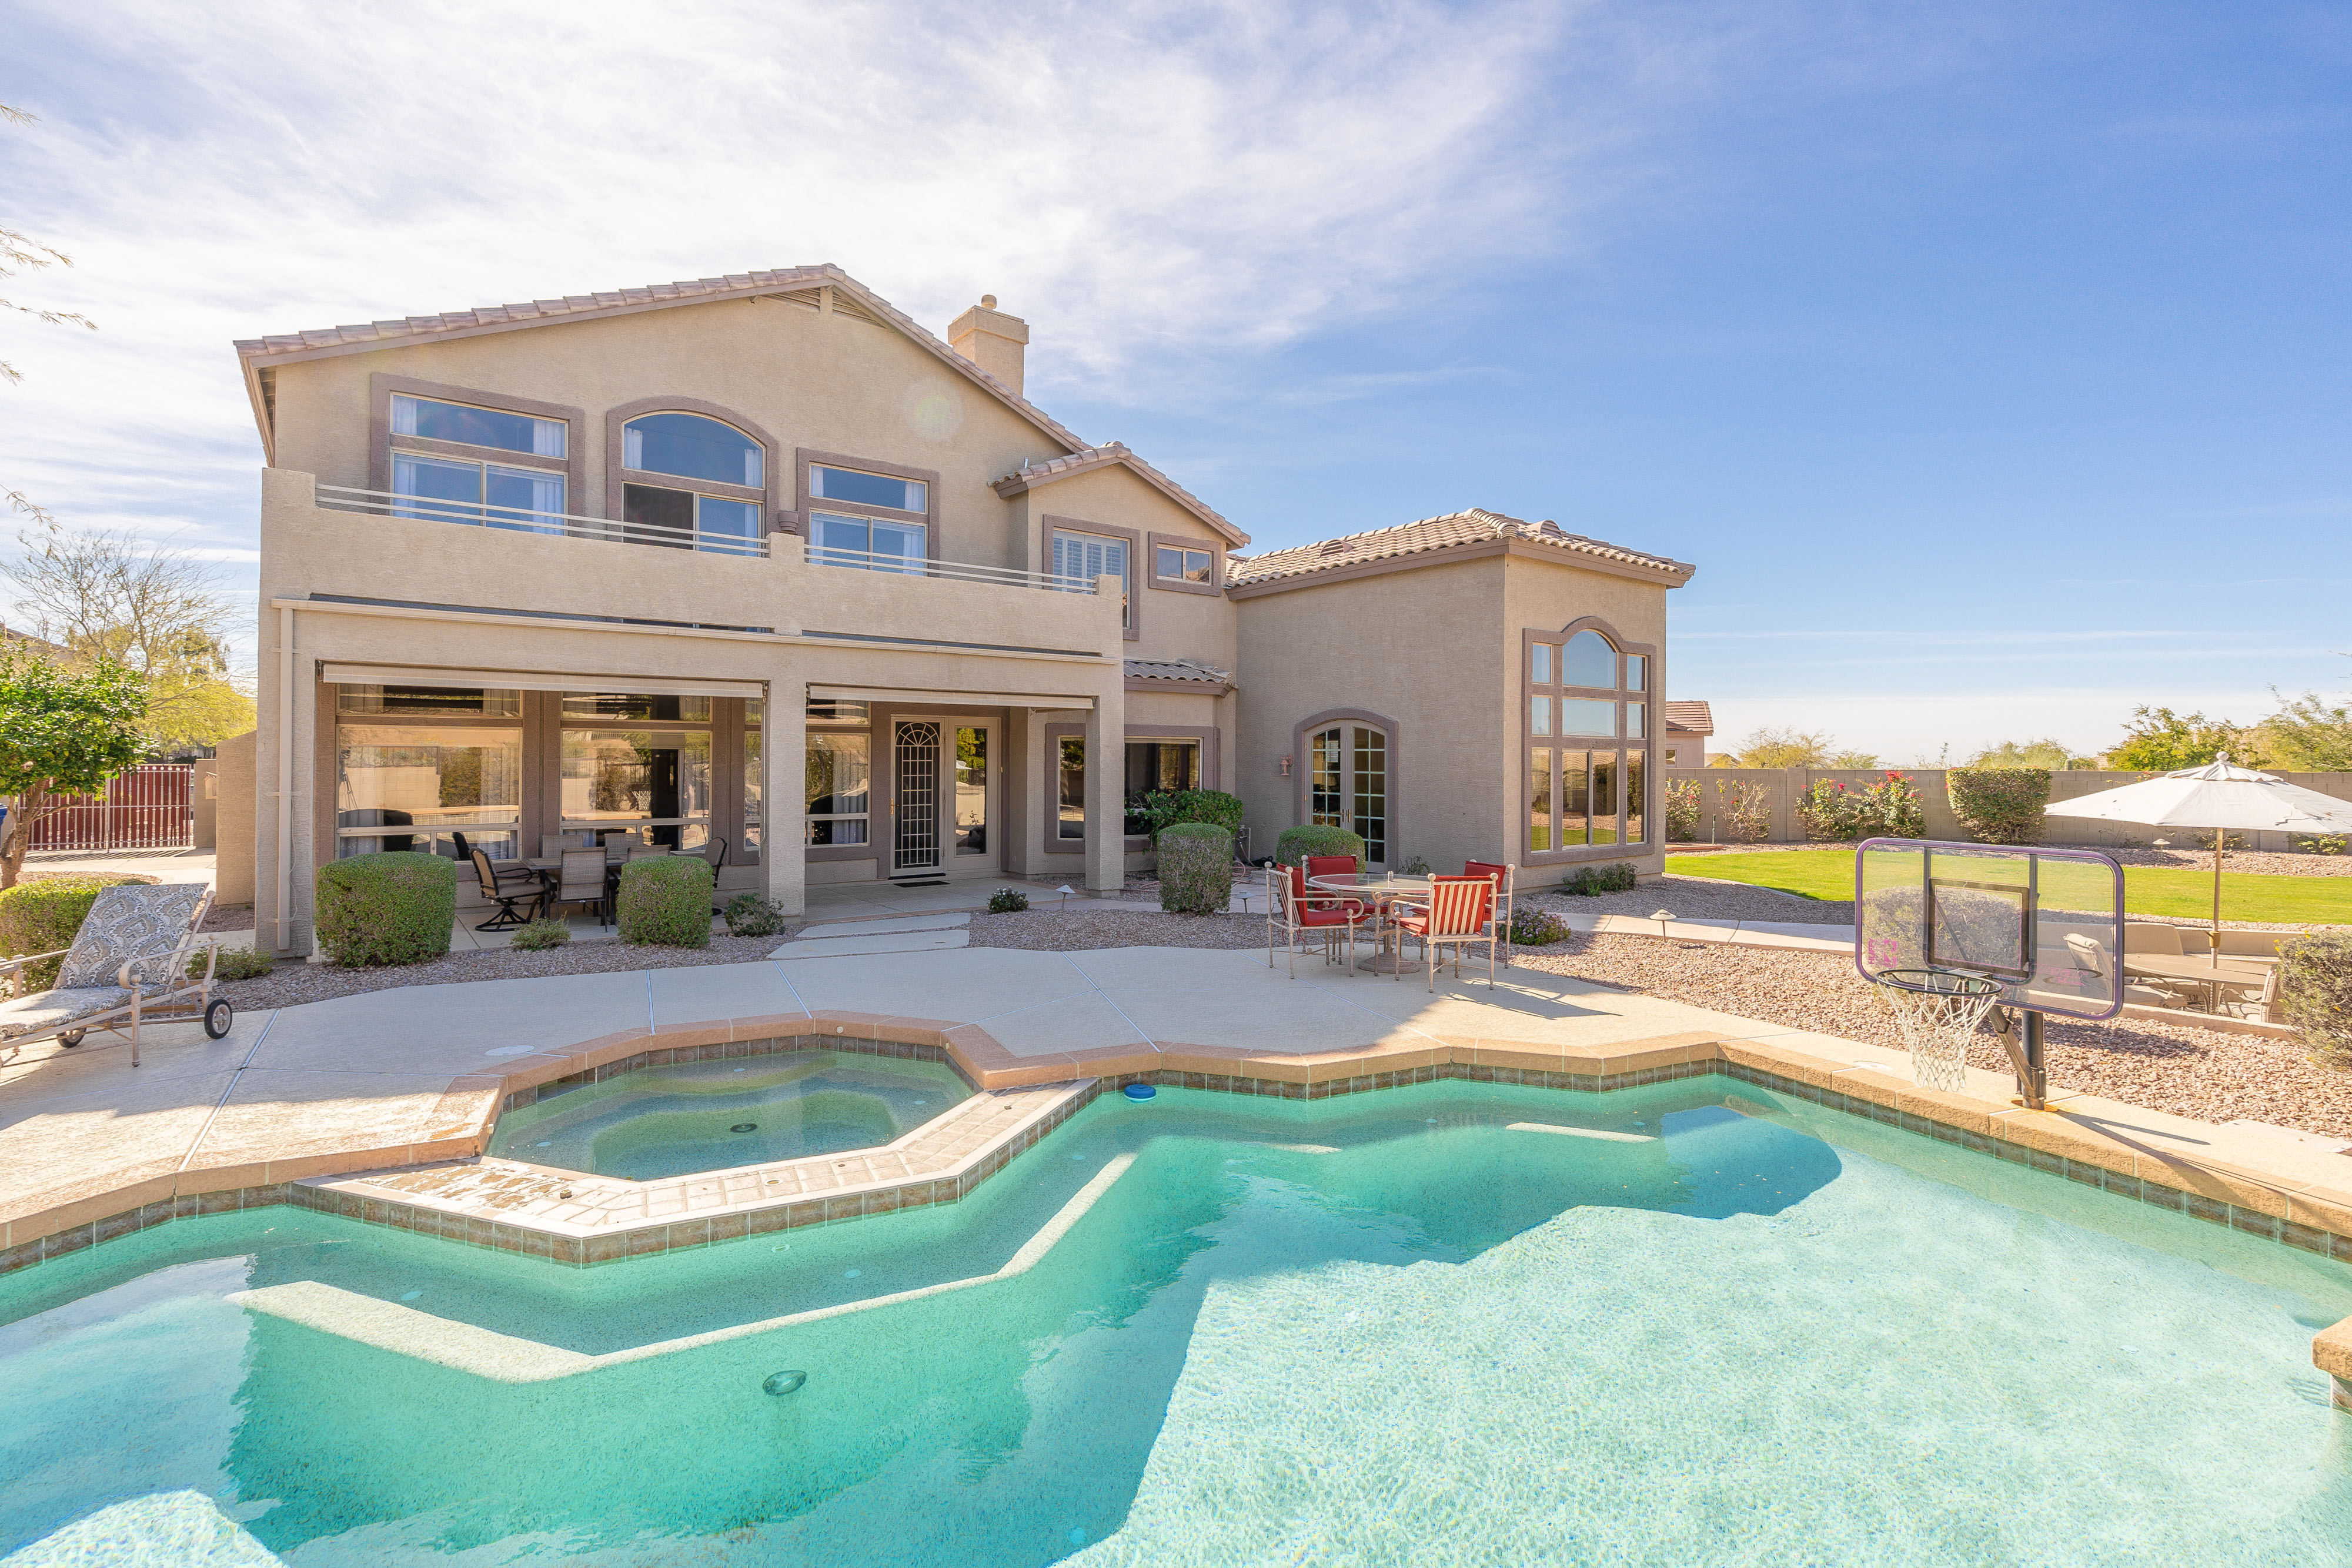 Mesa AZ Vacation Rental Welcome to Mesa!